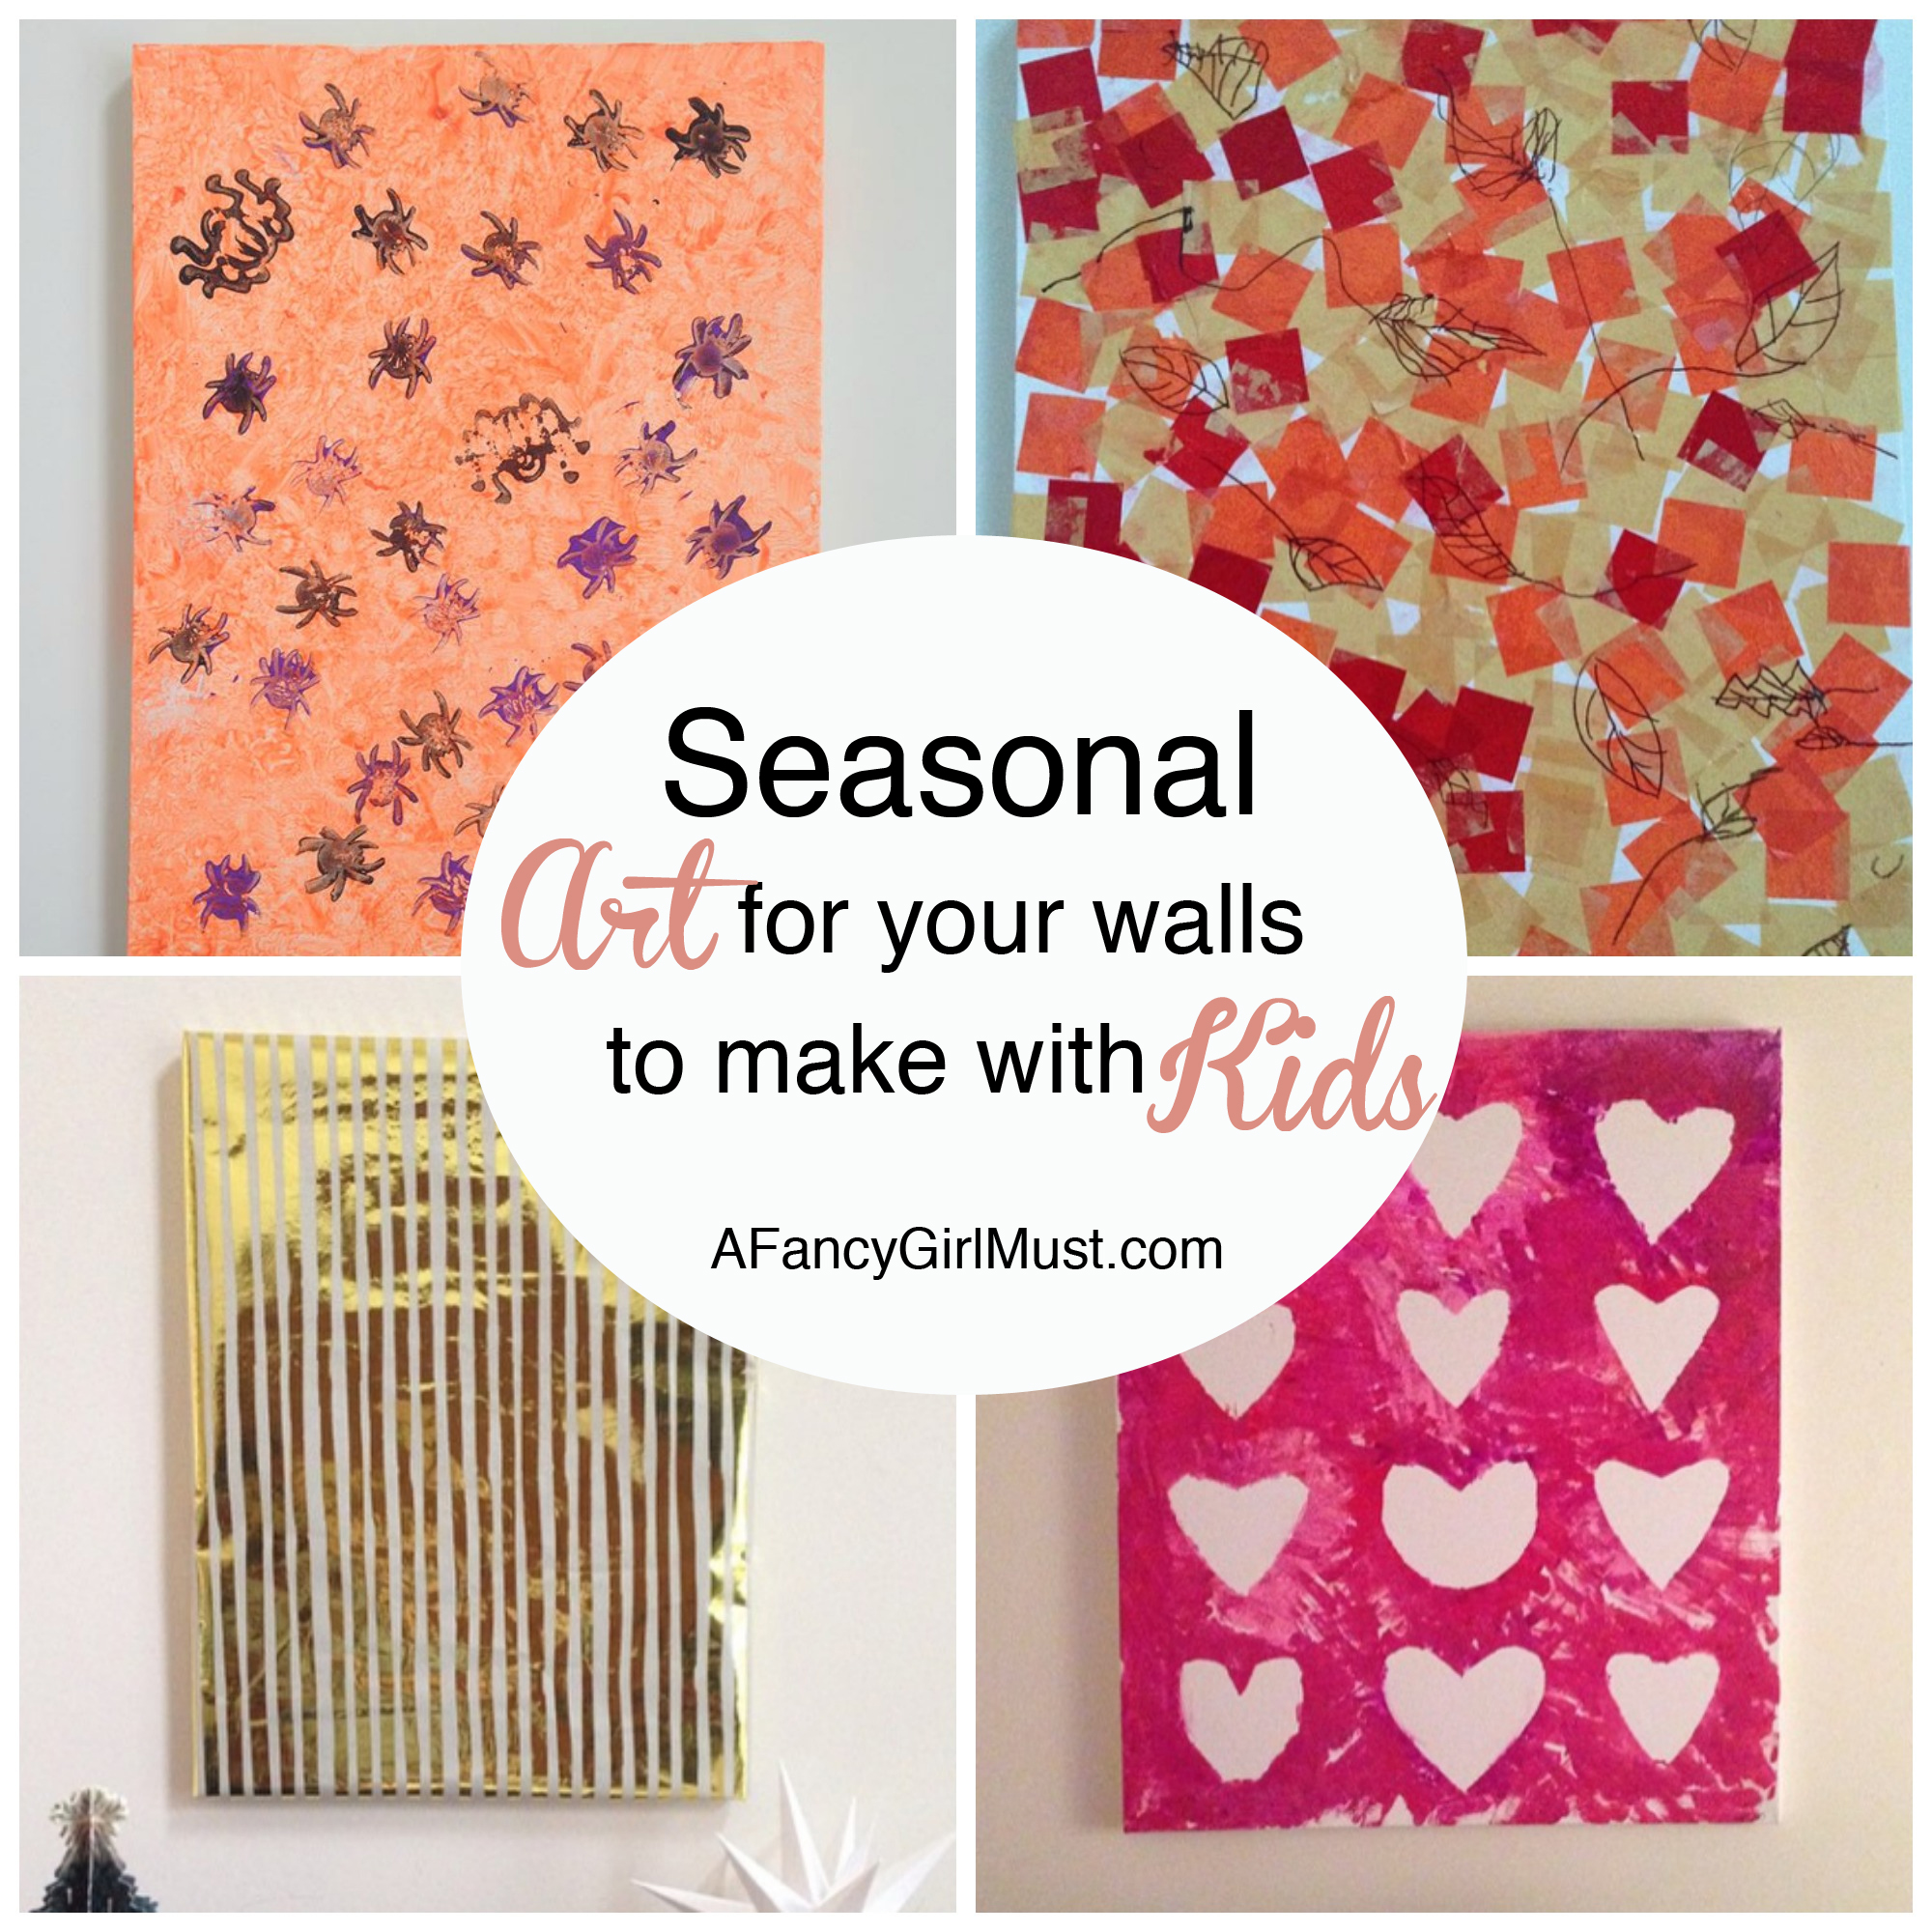 Seasonal Art for Your Walls That You Can Make with Your Kids | AFancyGirlMust.com